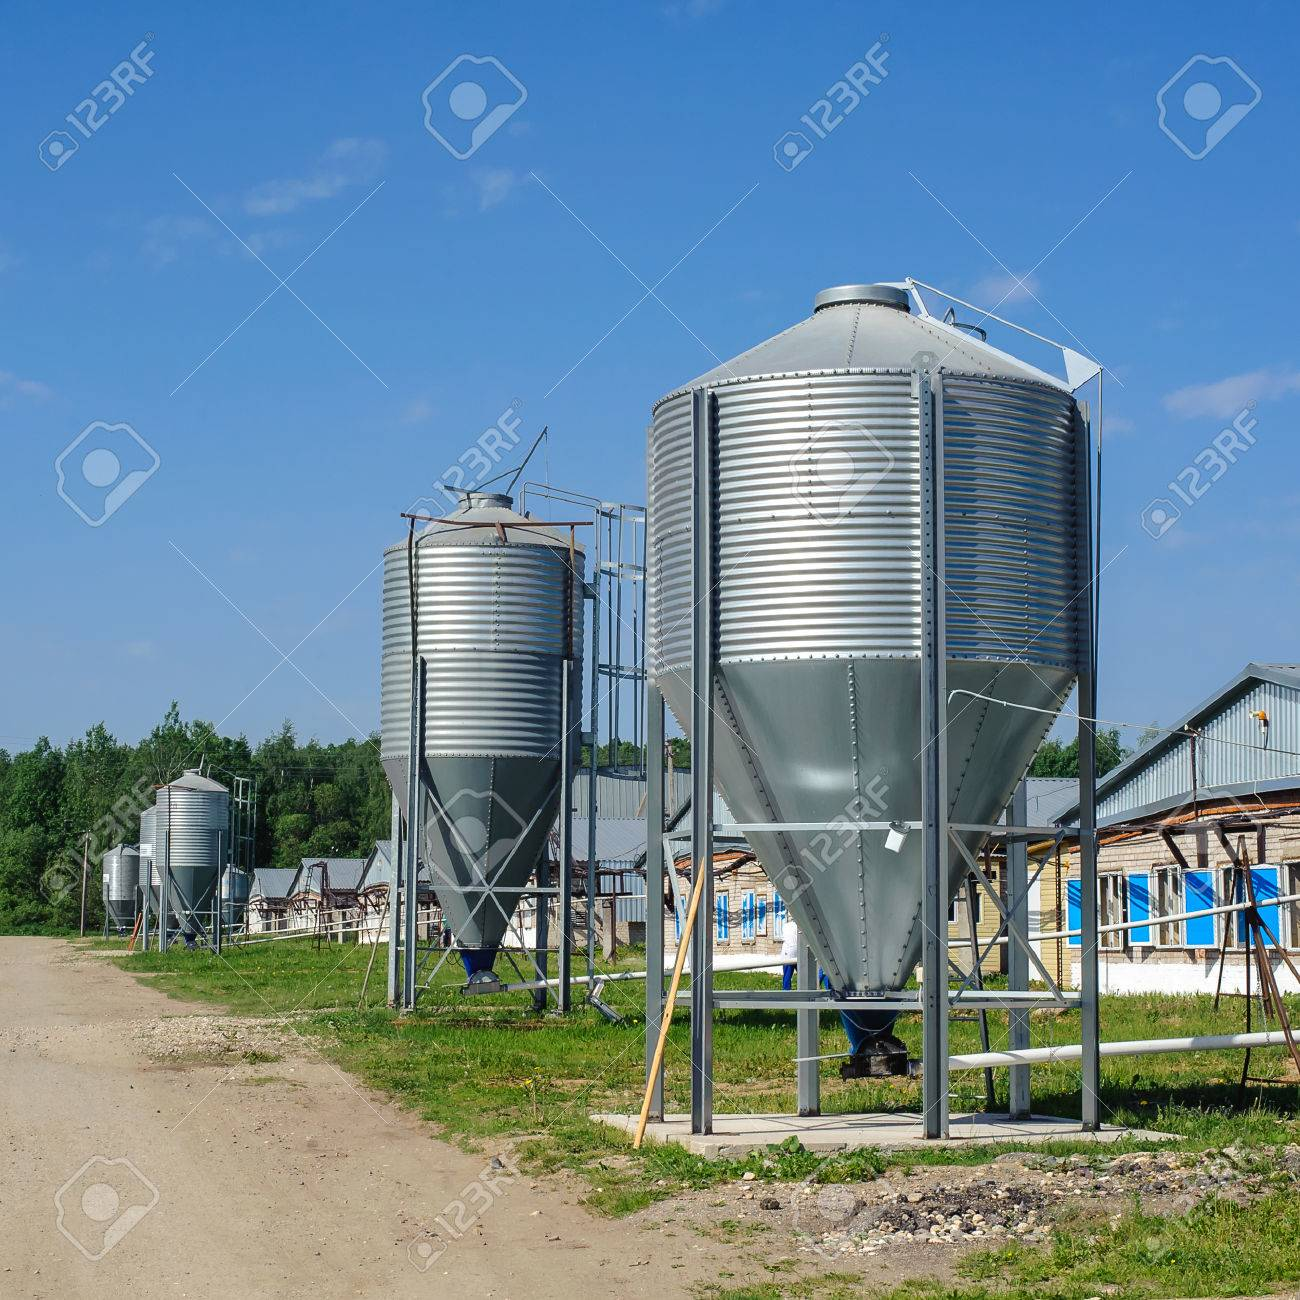 Water Storage Tanks On A Farm In Rural Stock Photo, Picture And ...